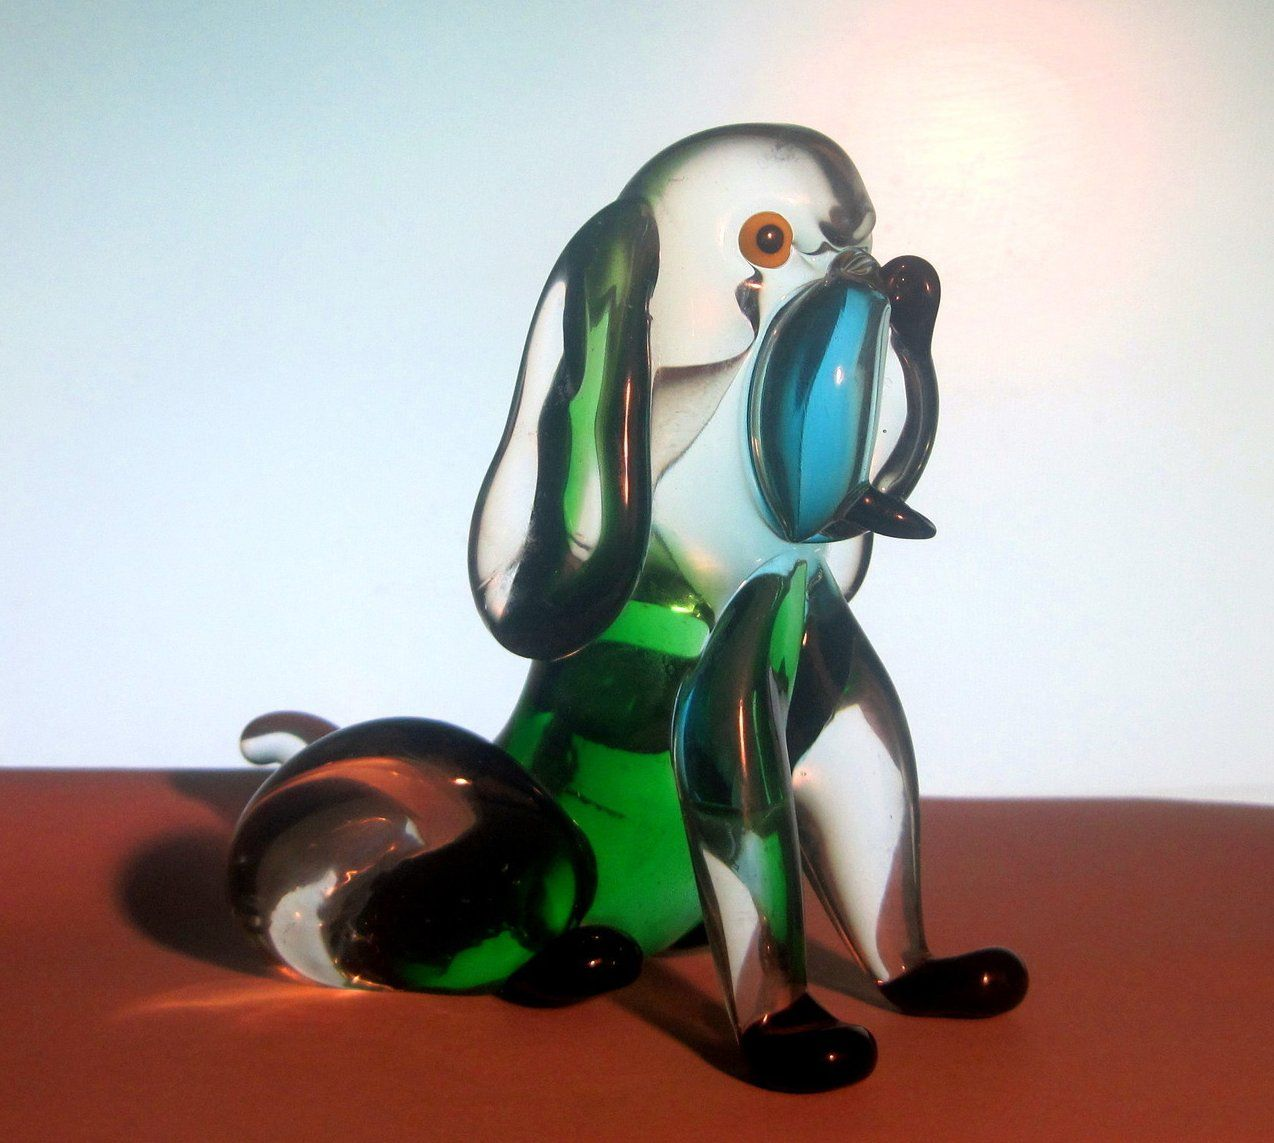 Arte Murano Icet Elephant Murano Art Glass Dog Arte Murano Icet Green Blue Oos Eye